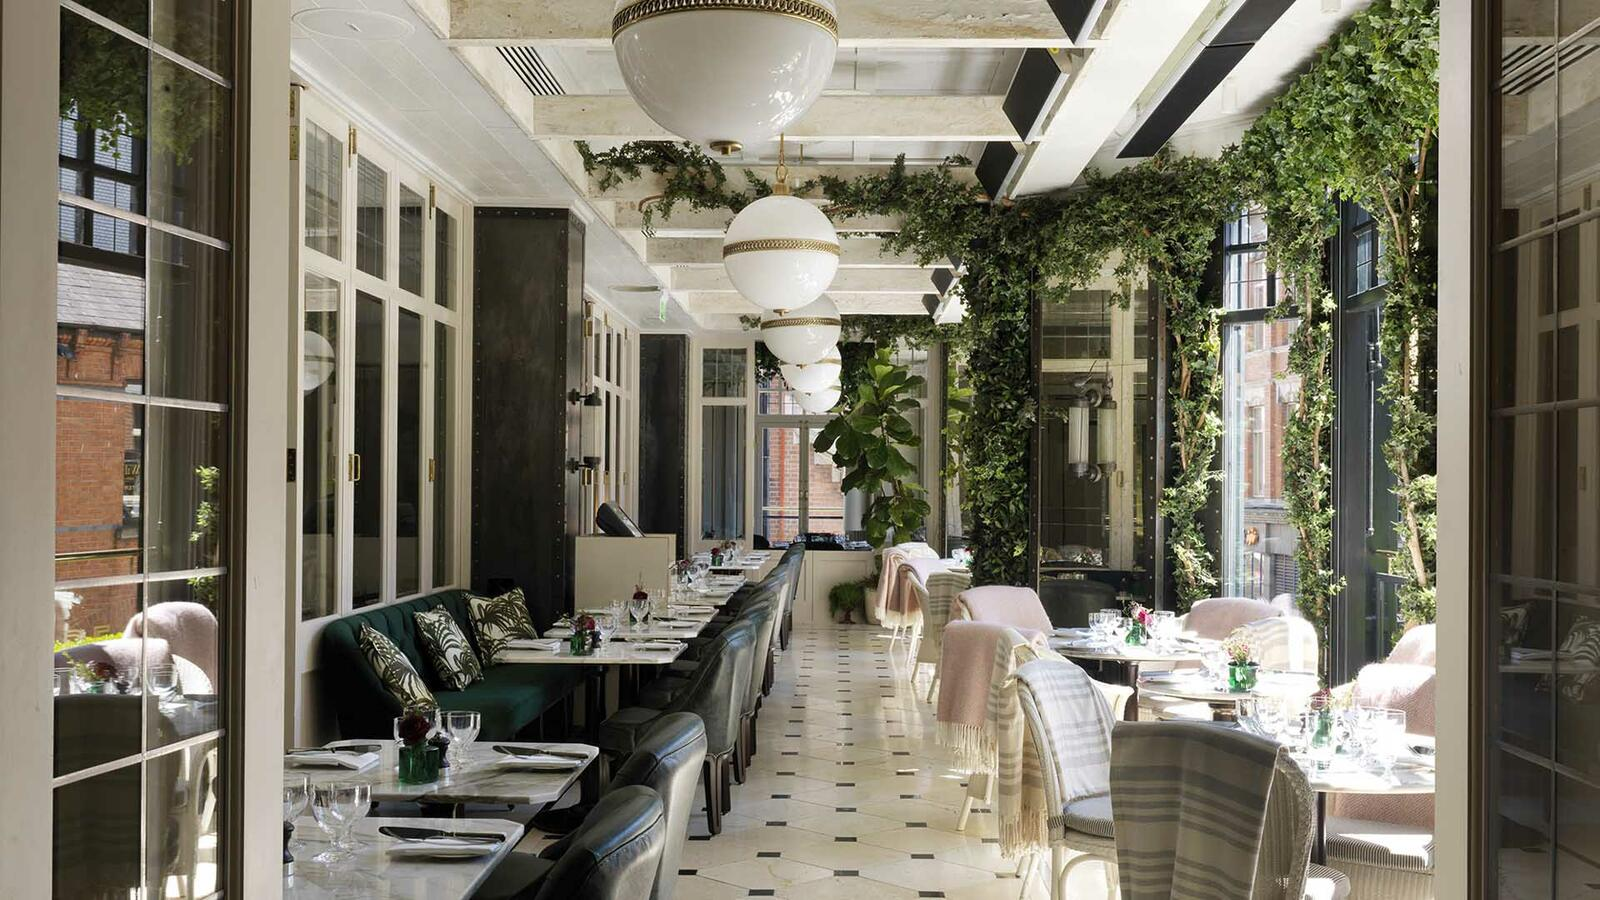 Wilde restaurant at The Westbury hotel